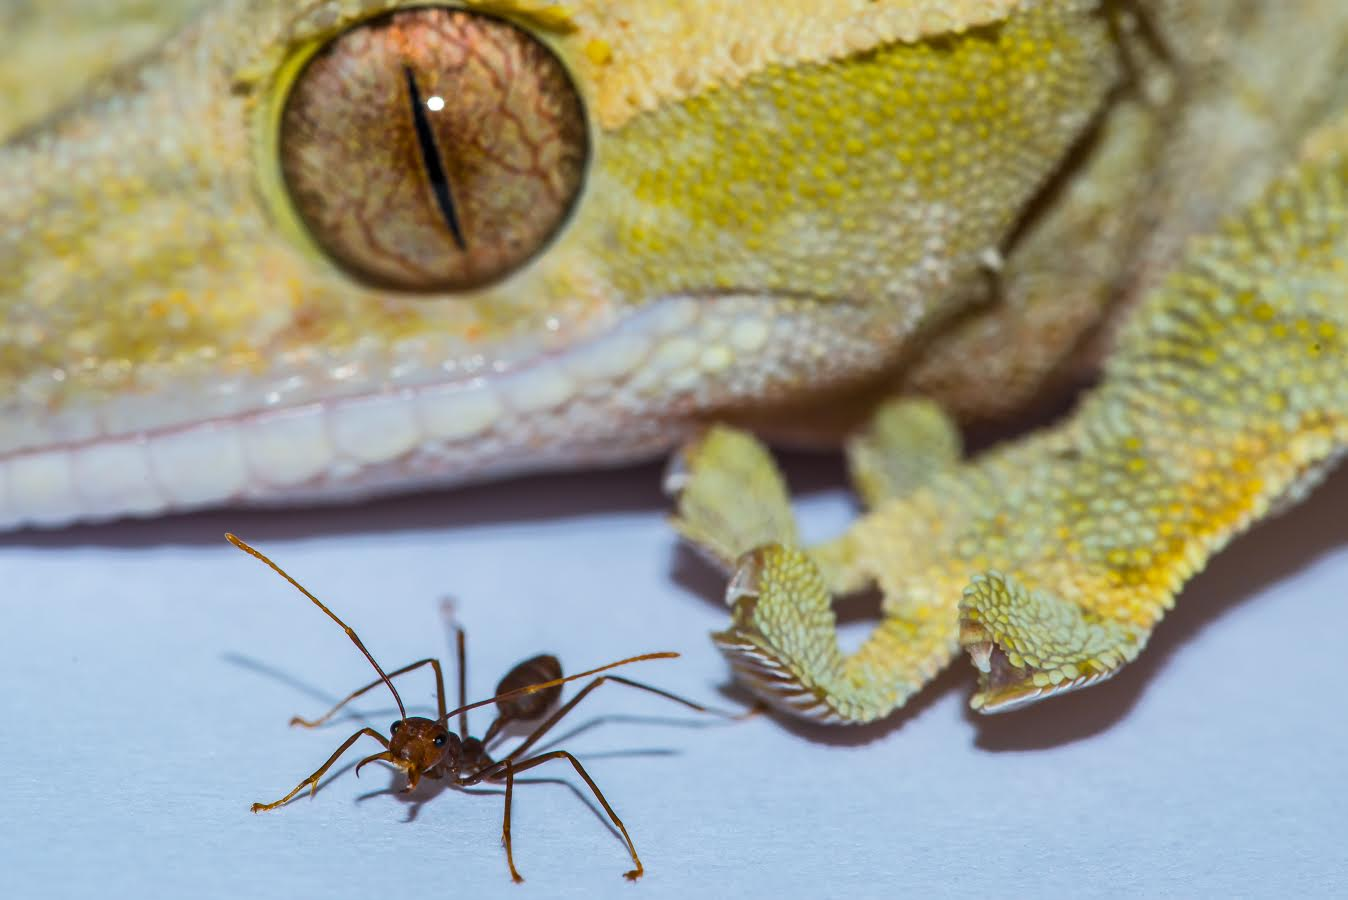 A gecko and an ant. Credit: A. Hackmann and D. Labonte